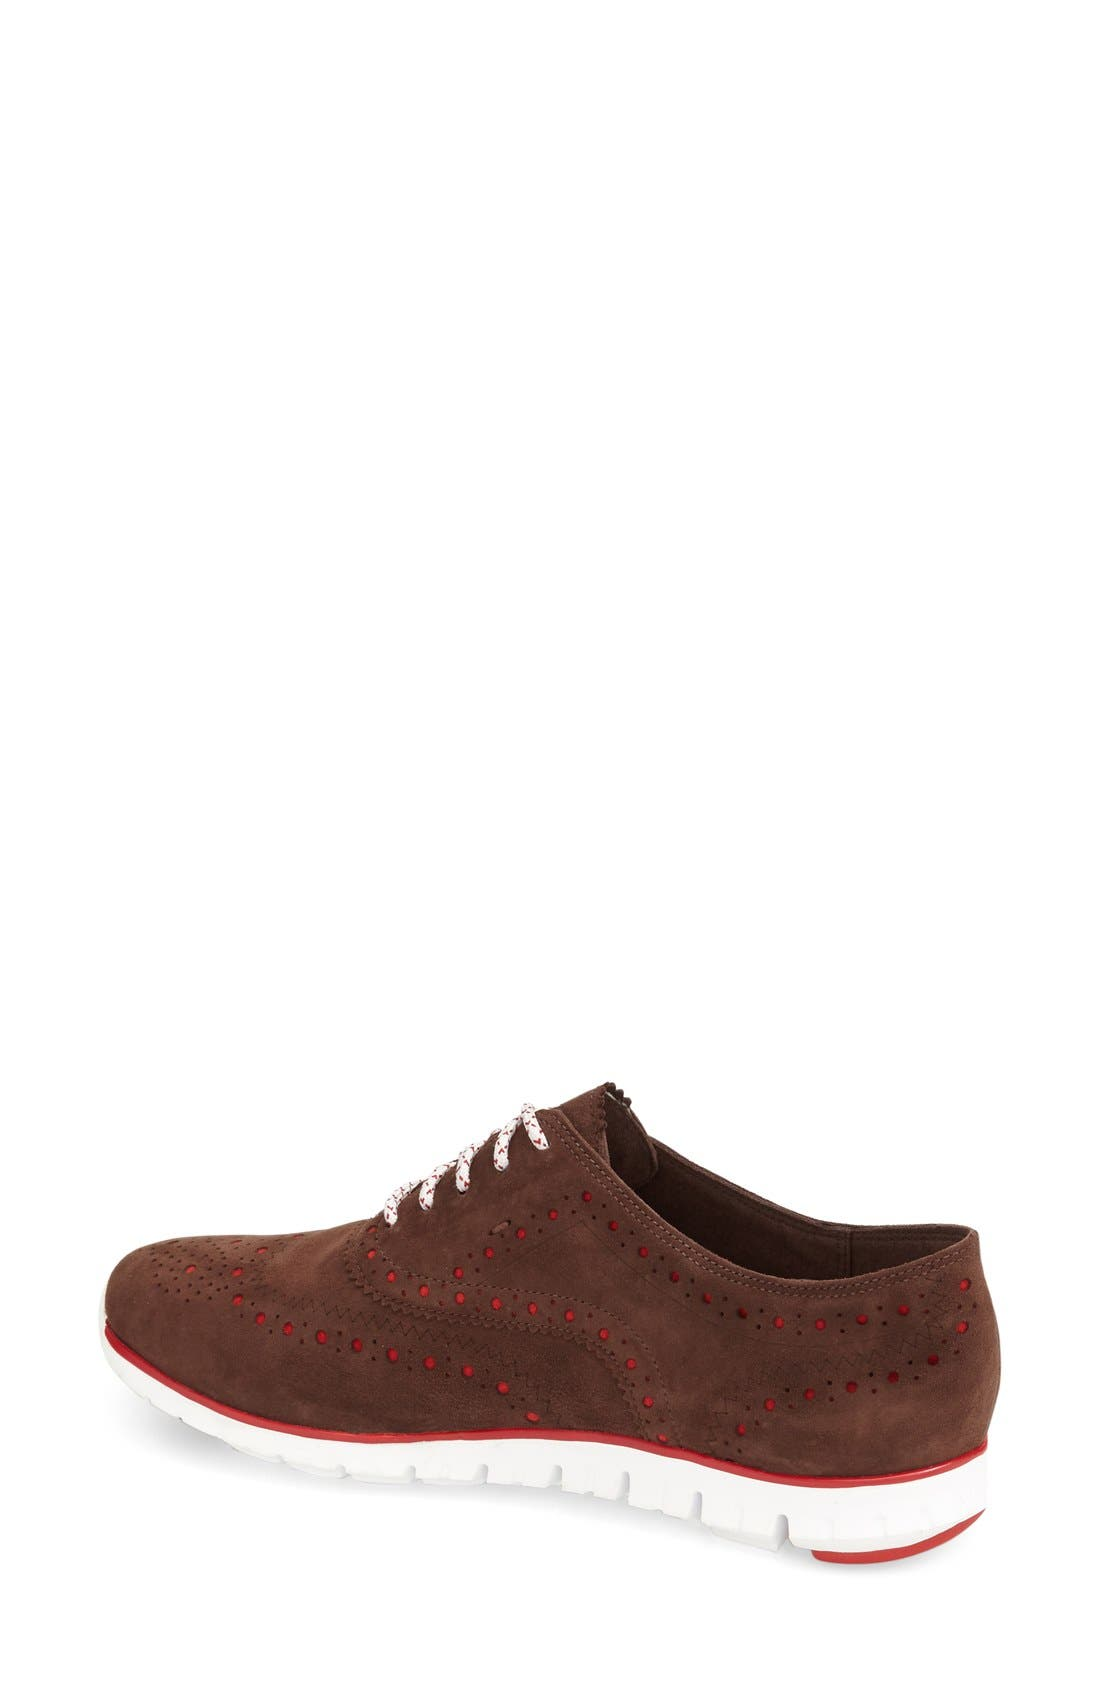 'ZeroGrand' Perforated Wingtip,                             Alternate thumbnail 45, color,